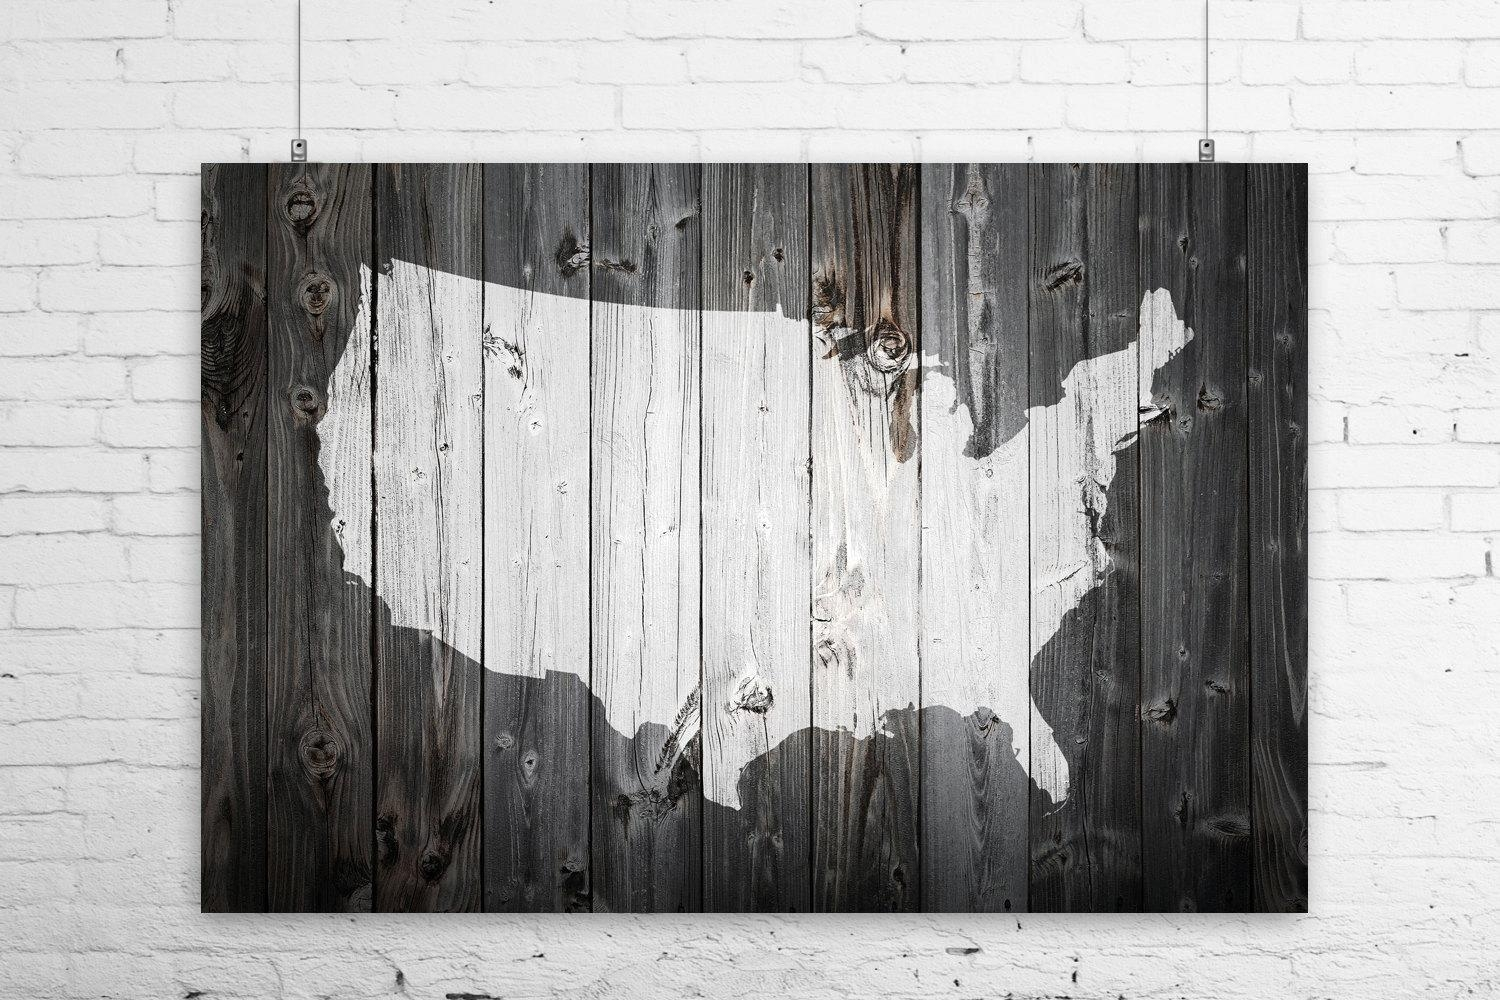 Rustic Painted Barn Wood Us Map Art Print Wall Poster Usa Intended For United States Map Wall Art (Image 10 of 21)